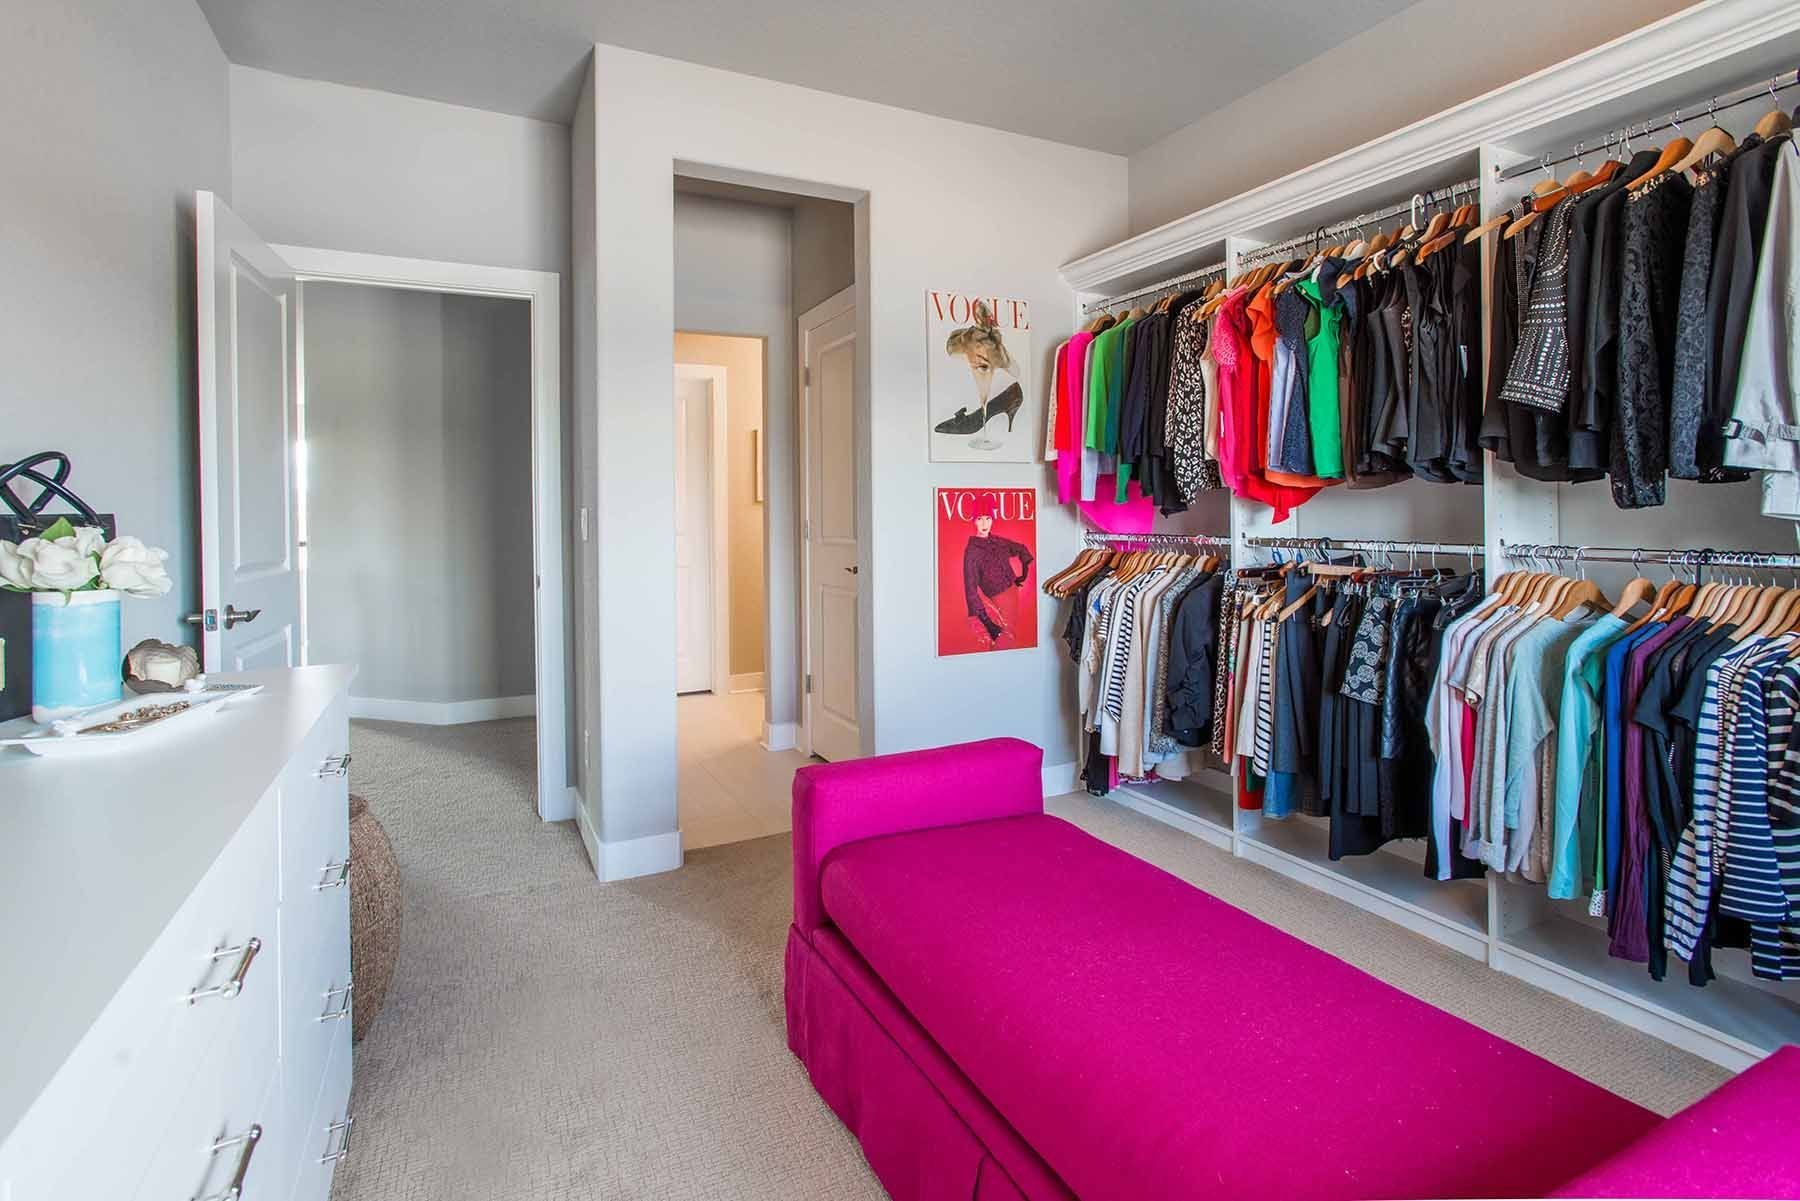 Best Pin By Devon Marrow Copeland On Home Spare Bedroom Closets Spare Room Closet Bedroom Turned With Pictures